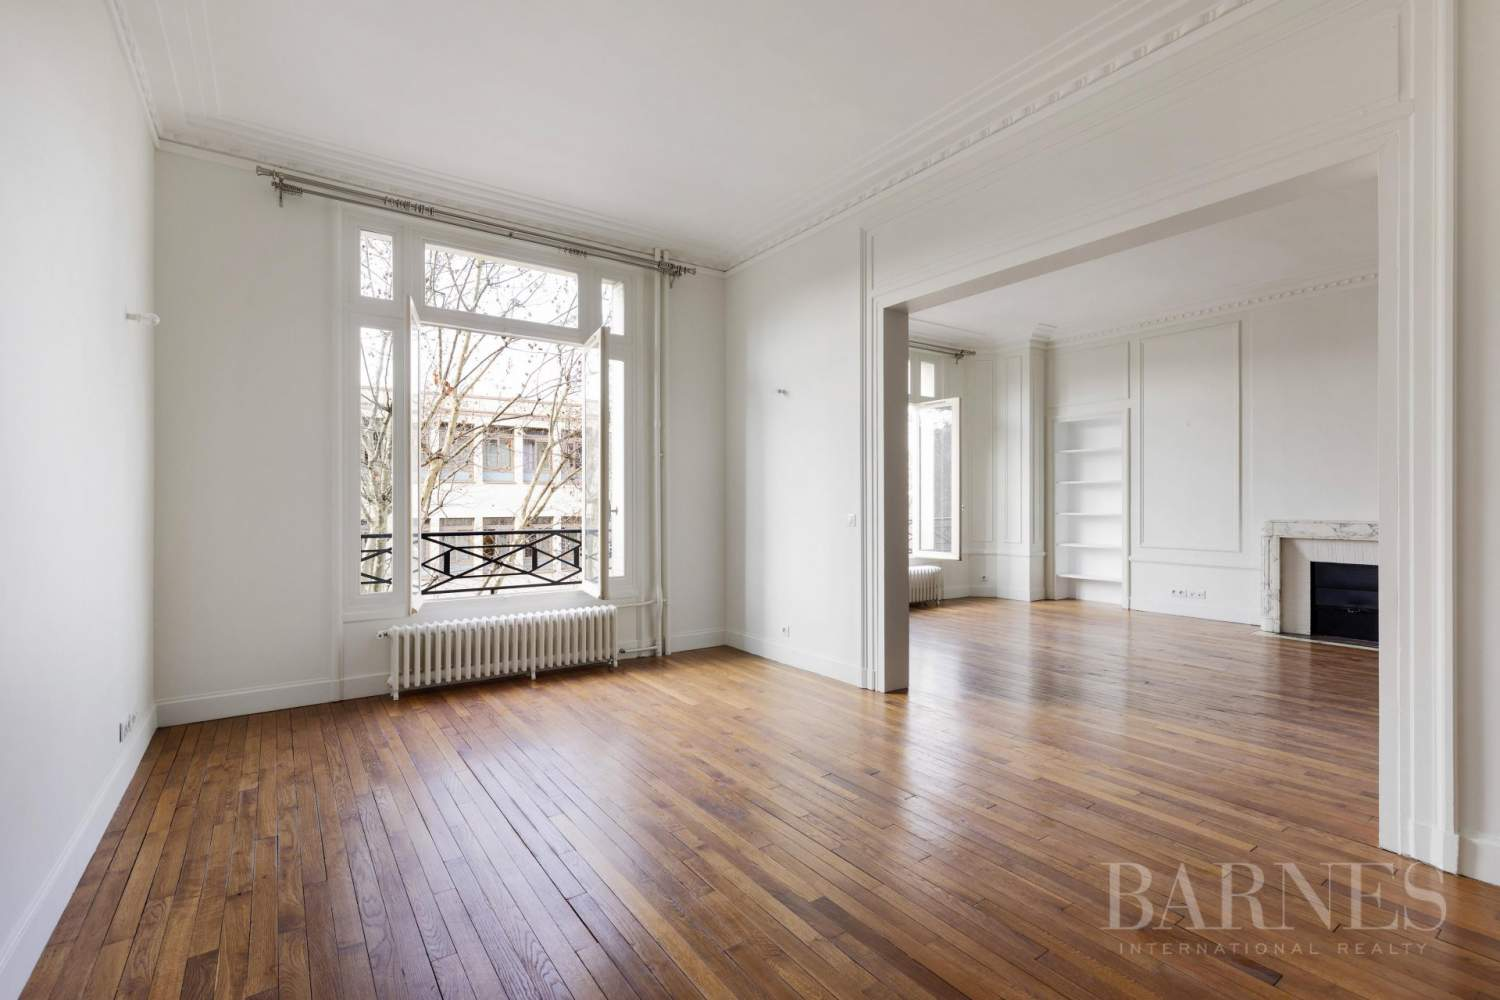 EXCLUSIVE - 8-ROOM APARTMENT FOR SALE - RENOVATED 1930s BUILDING - NEUILLY/PASTEUR picture 12